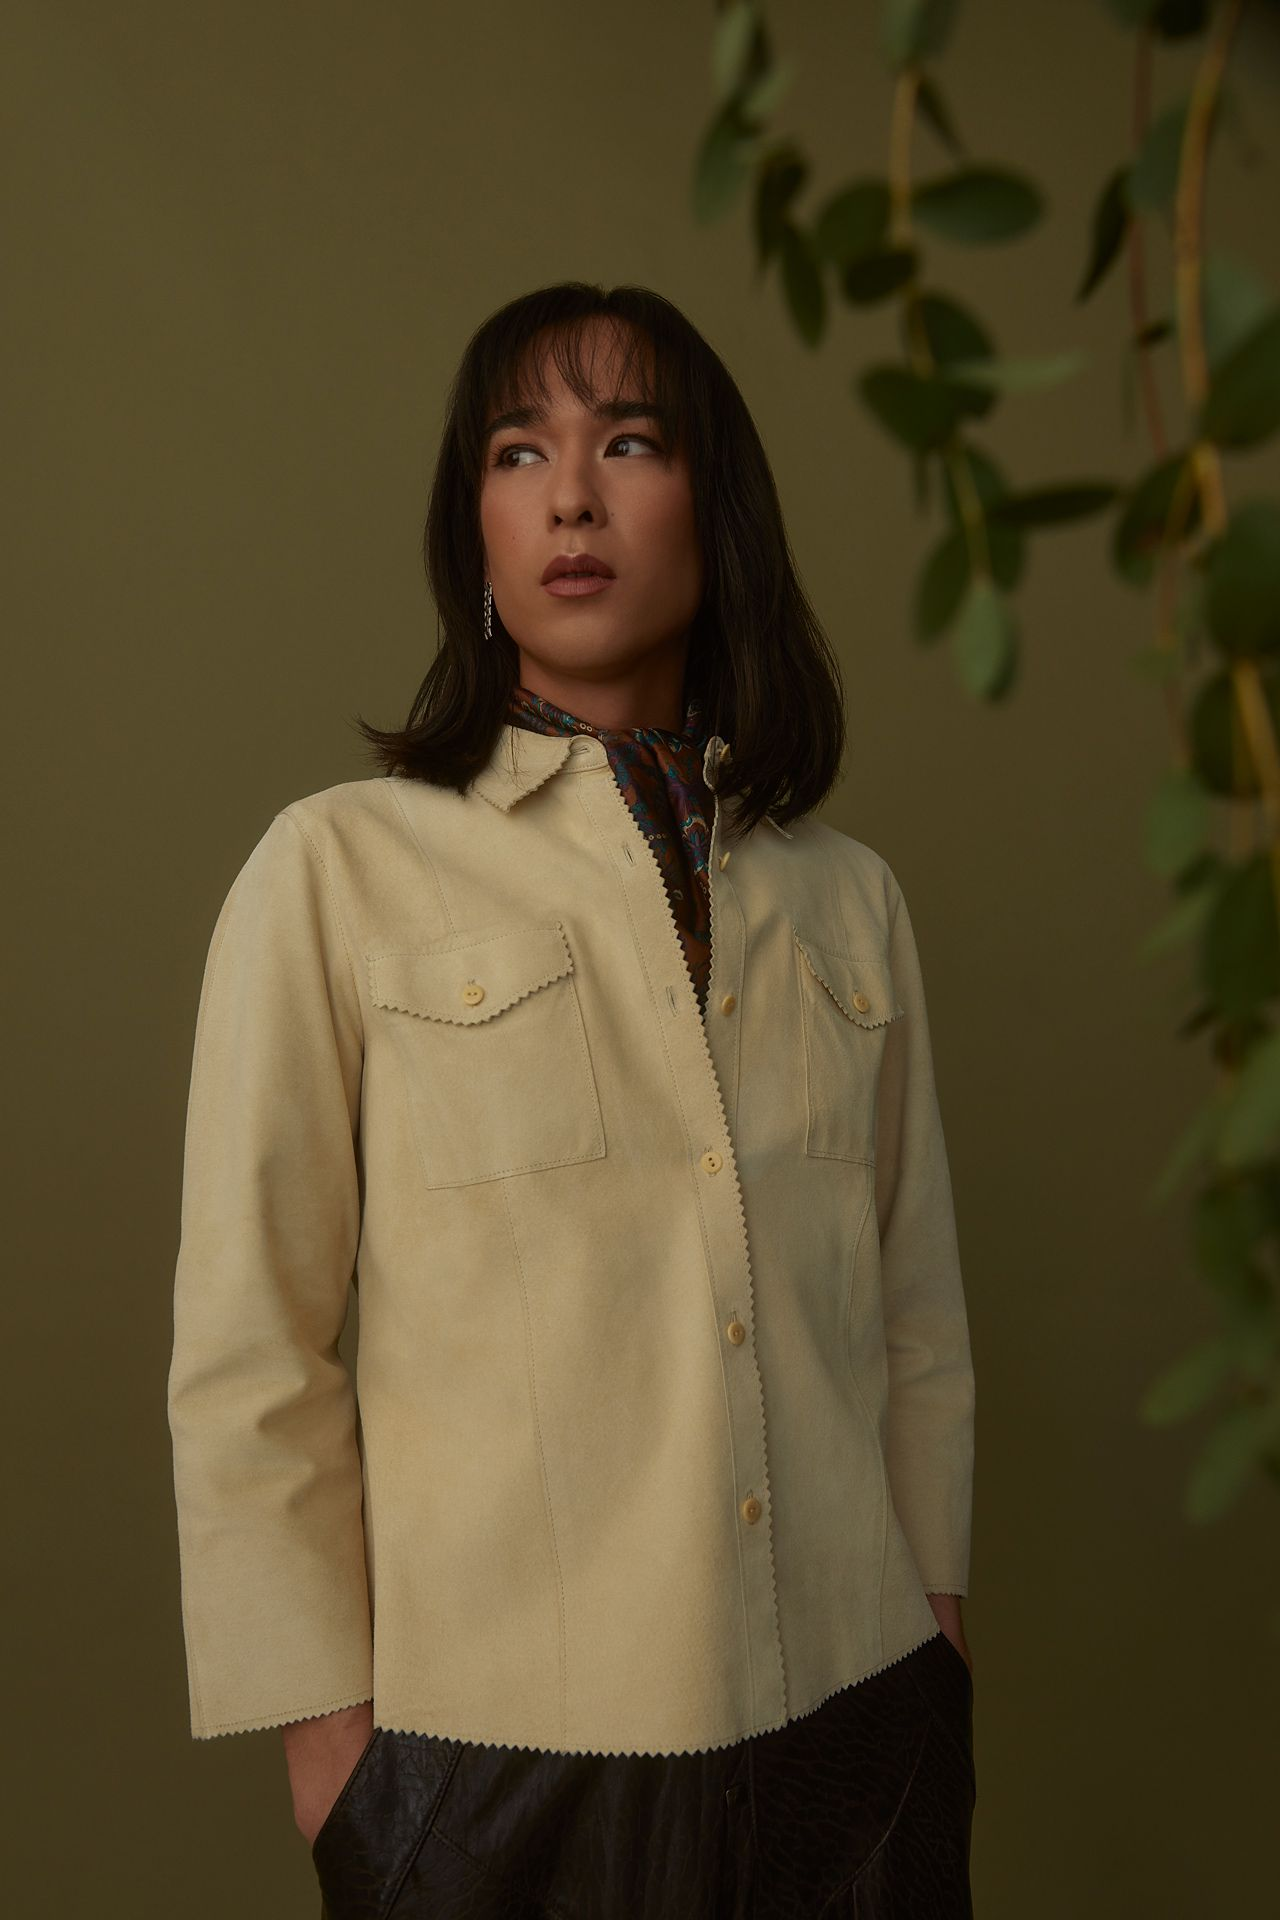 female model wearing beige suede button-up shirt and black pants with her hands in her pockets looking to the side on dark green background photographed by Kelly Jacob for LEV